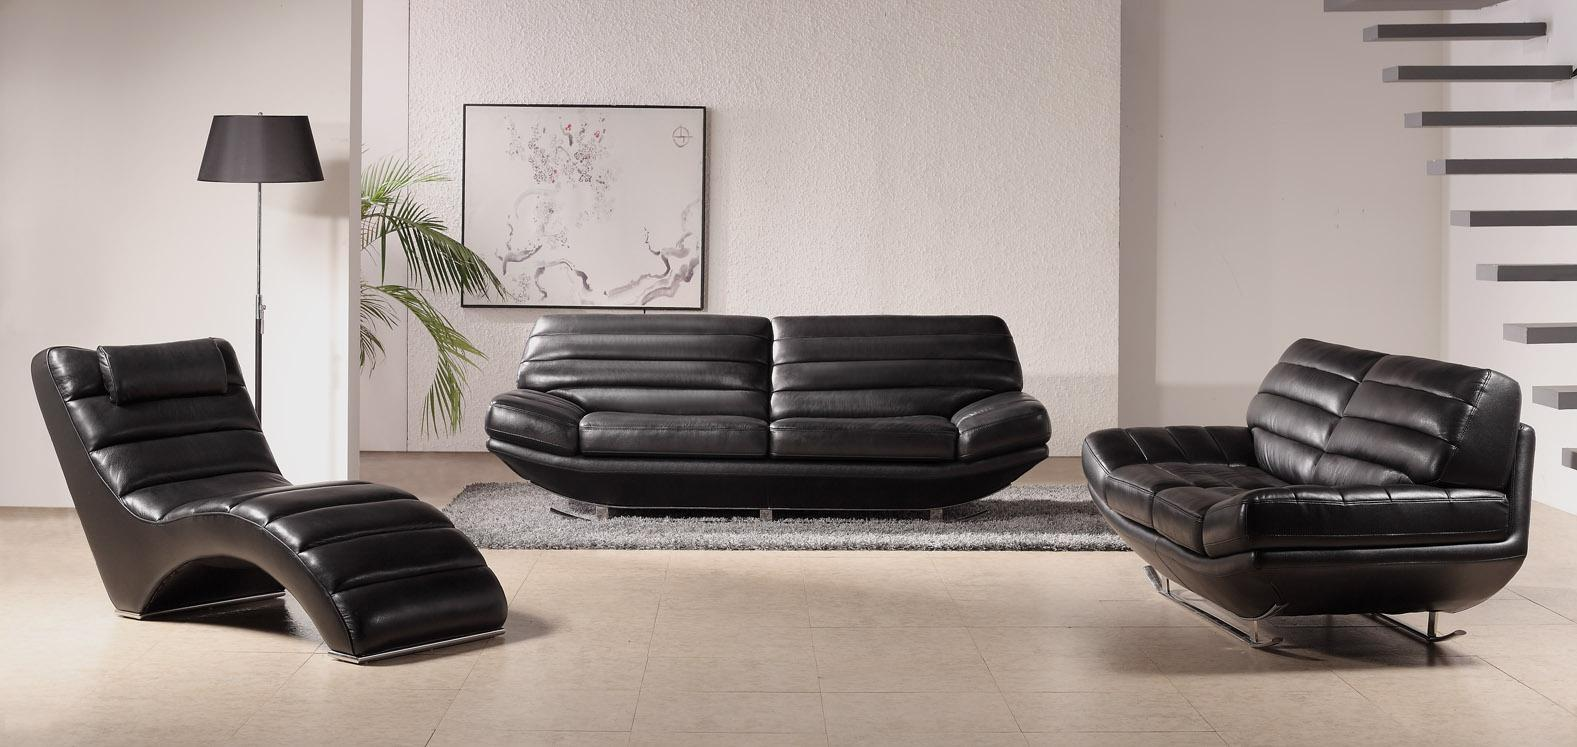 Know about types of couches and sofas my decorative for Family room leather furniture